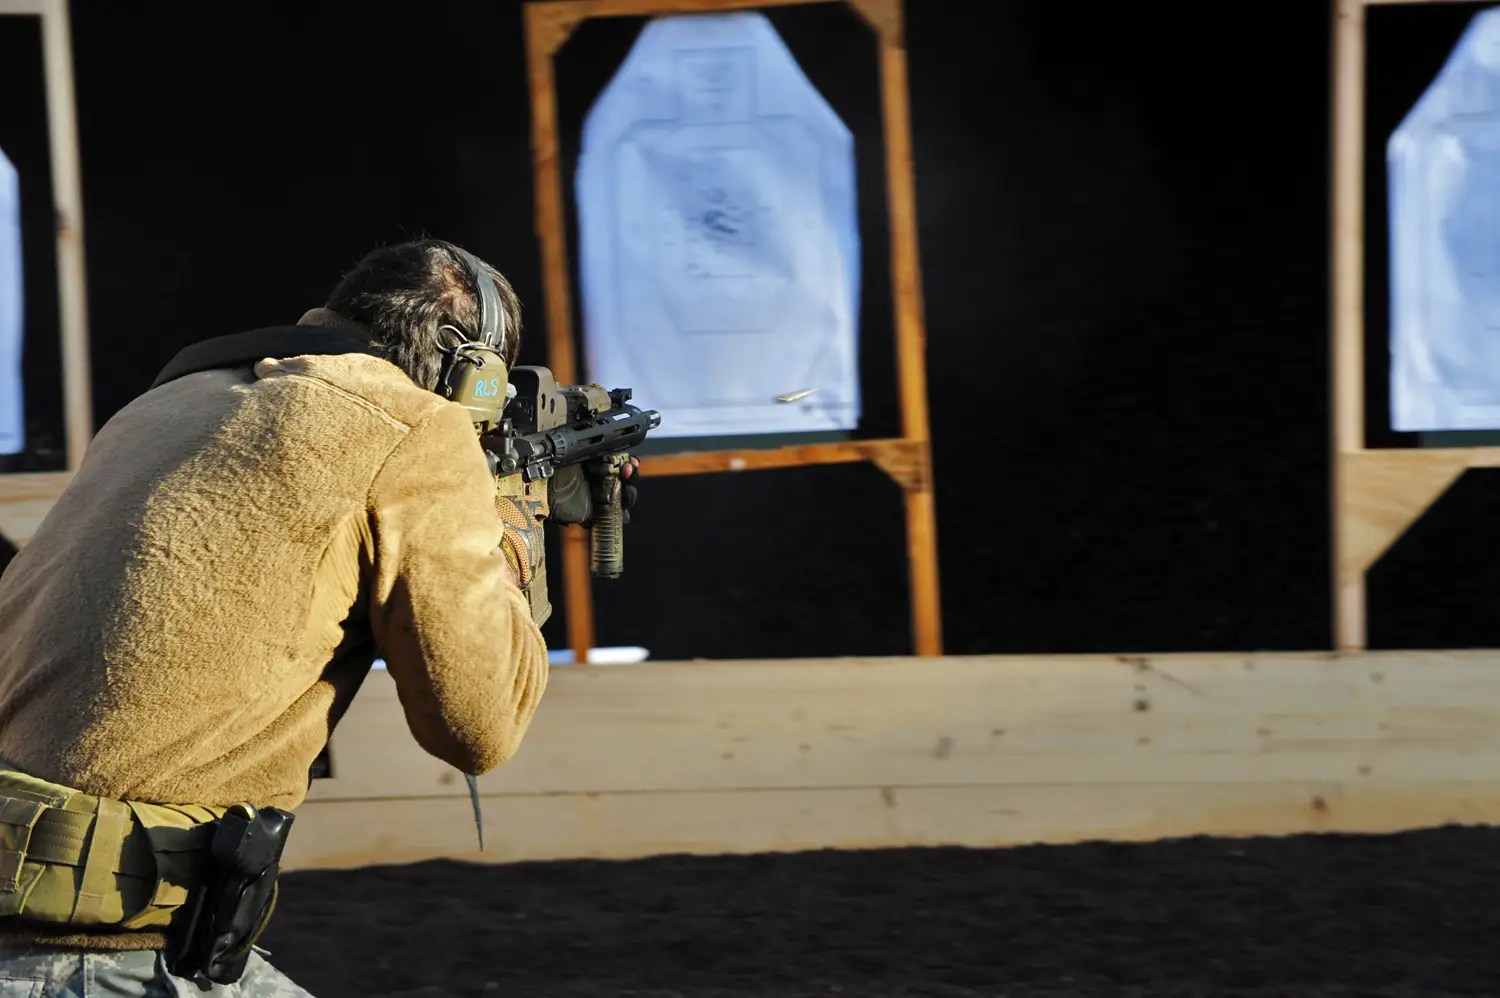 ... That are both extremely accurate and fast shooters — and can remain so when fired upon.